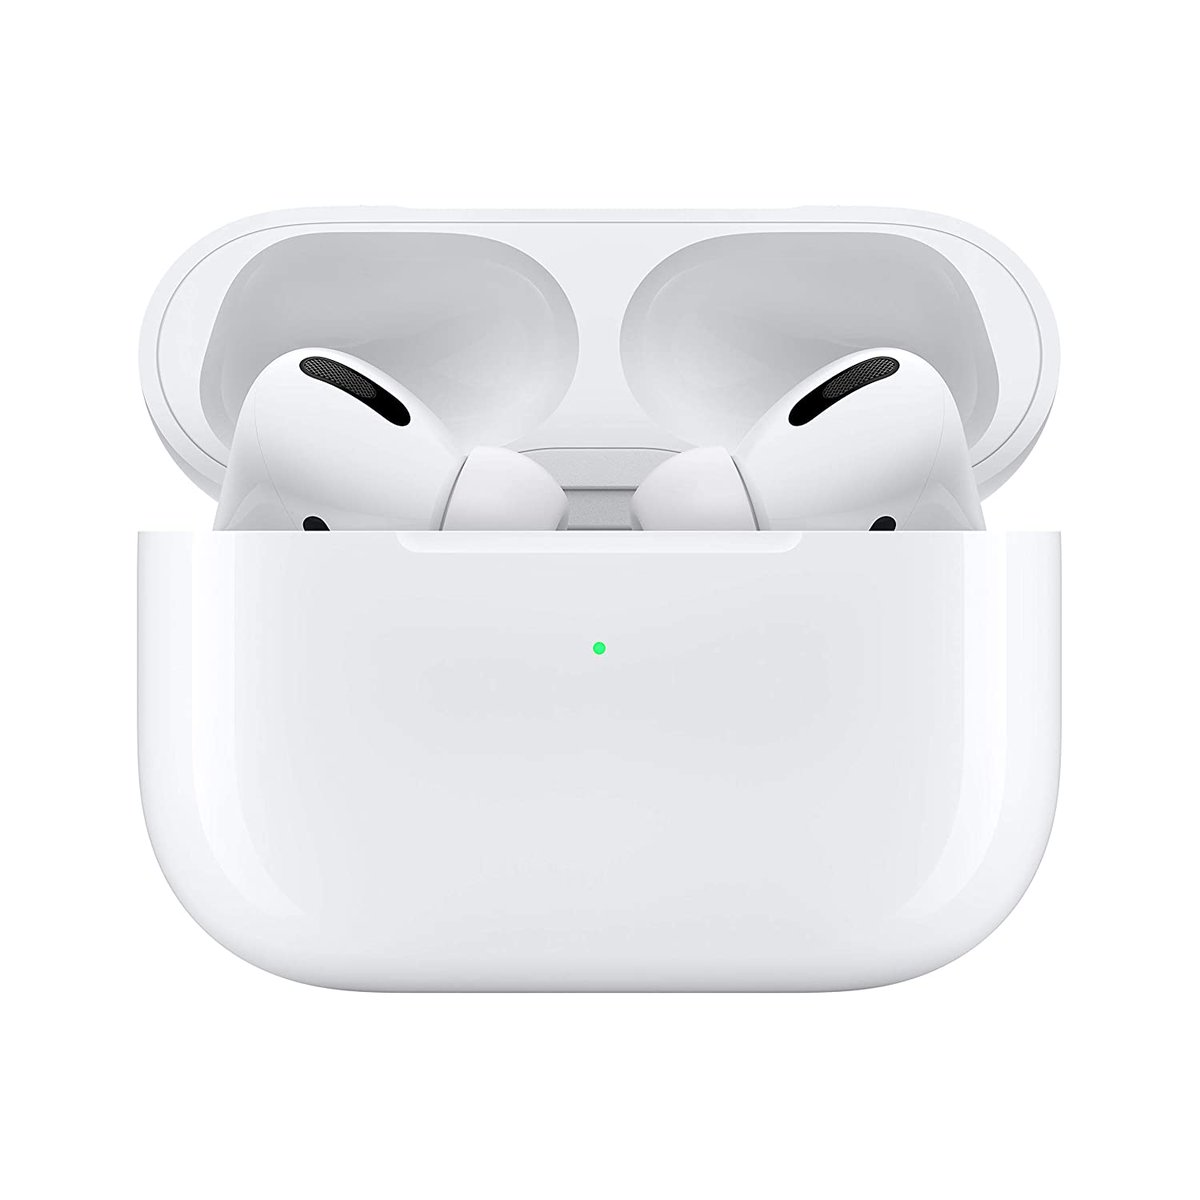 Apple AirPods Pro  2   #AirpodsPro #Airpods #Headphones